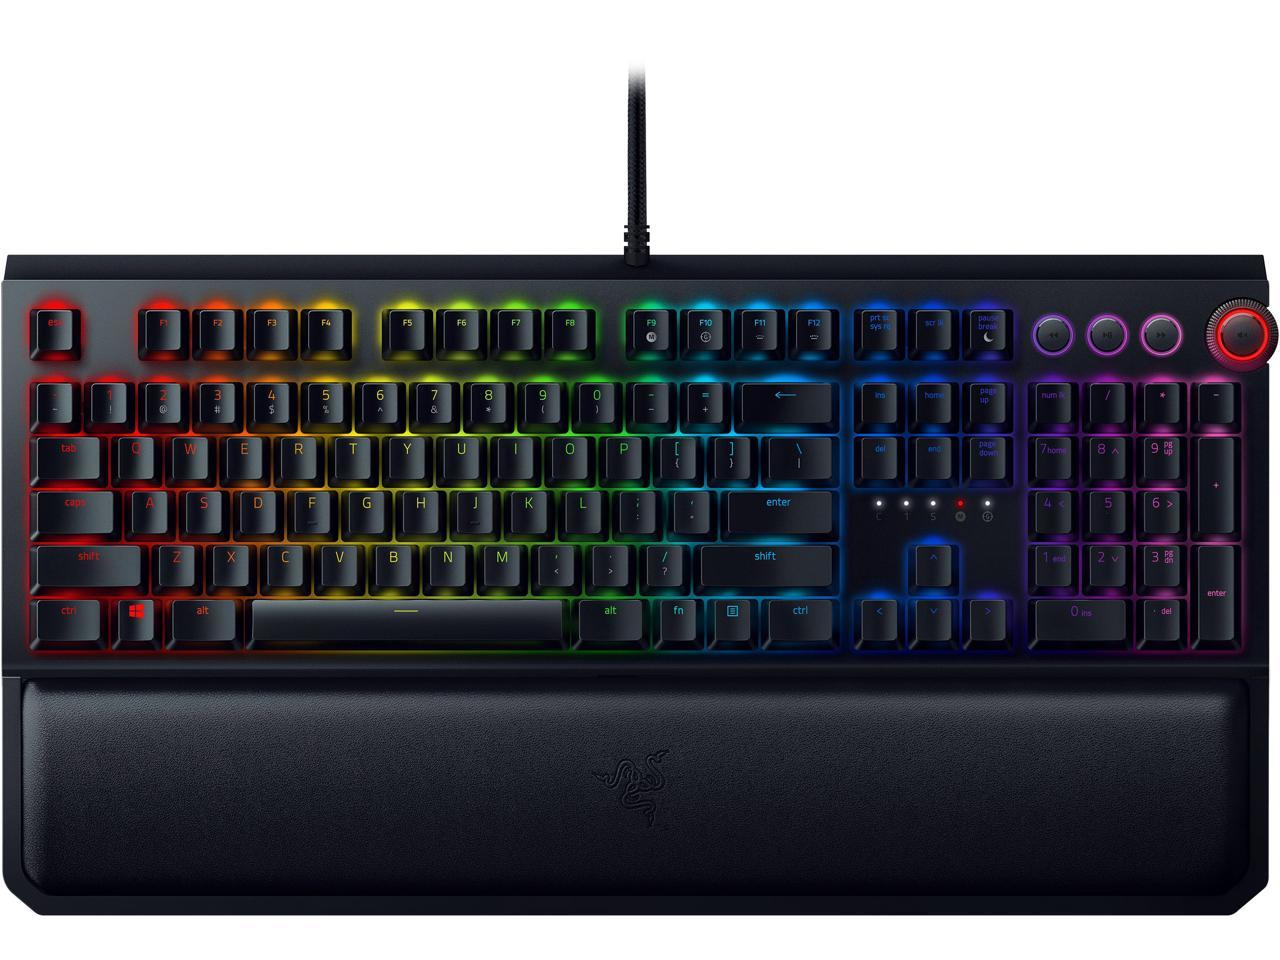 Razer BlackWidow Elite Mechanical Gaming Keyboard: Green Mechani